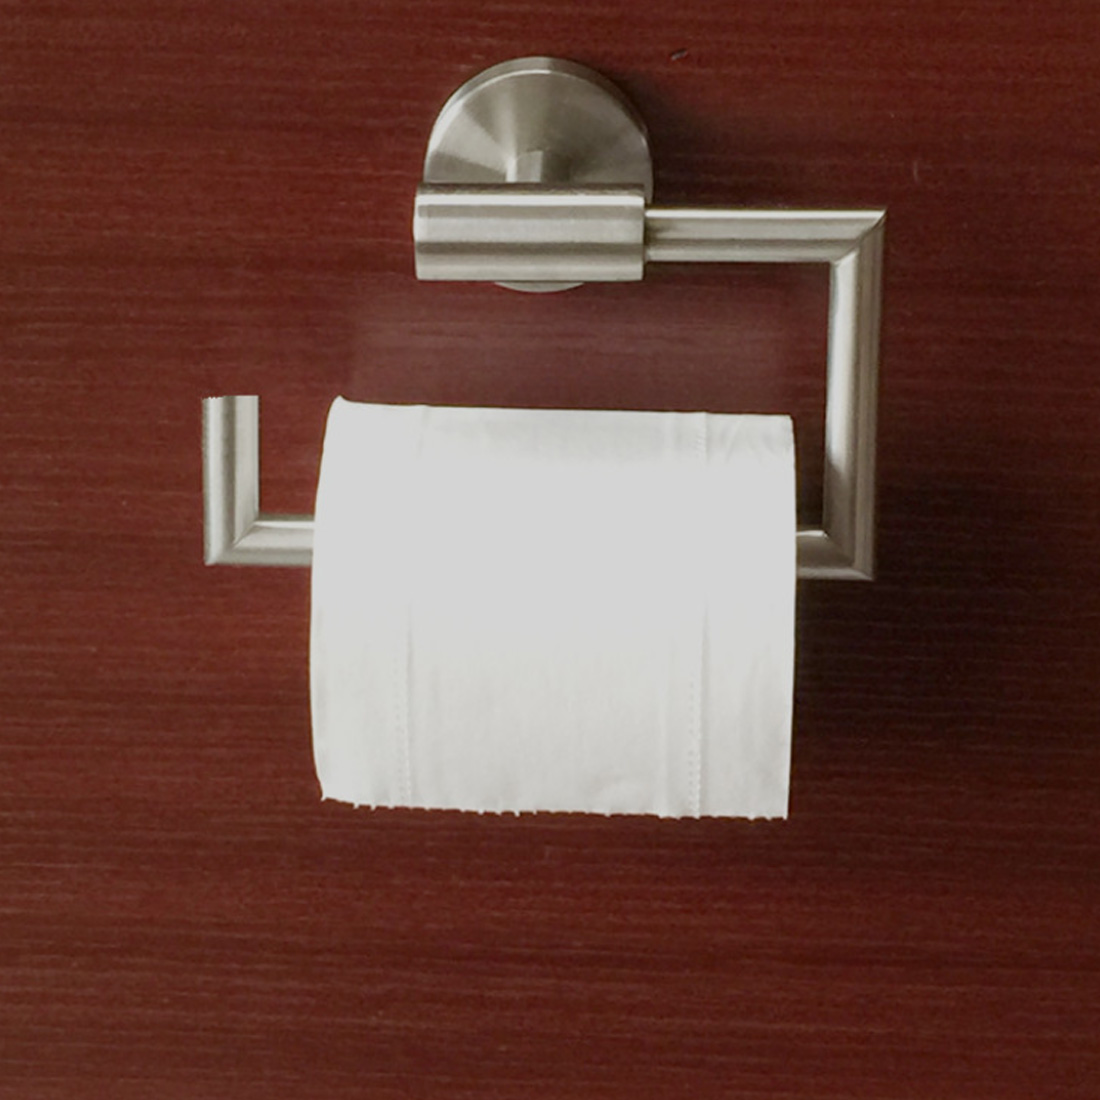 Rustproof Stainless Steel Toilet Paper Holder Bathroom Kitchen Roll ...